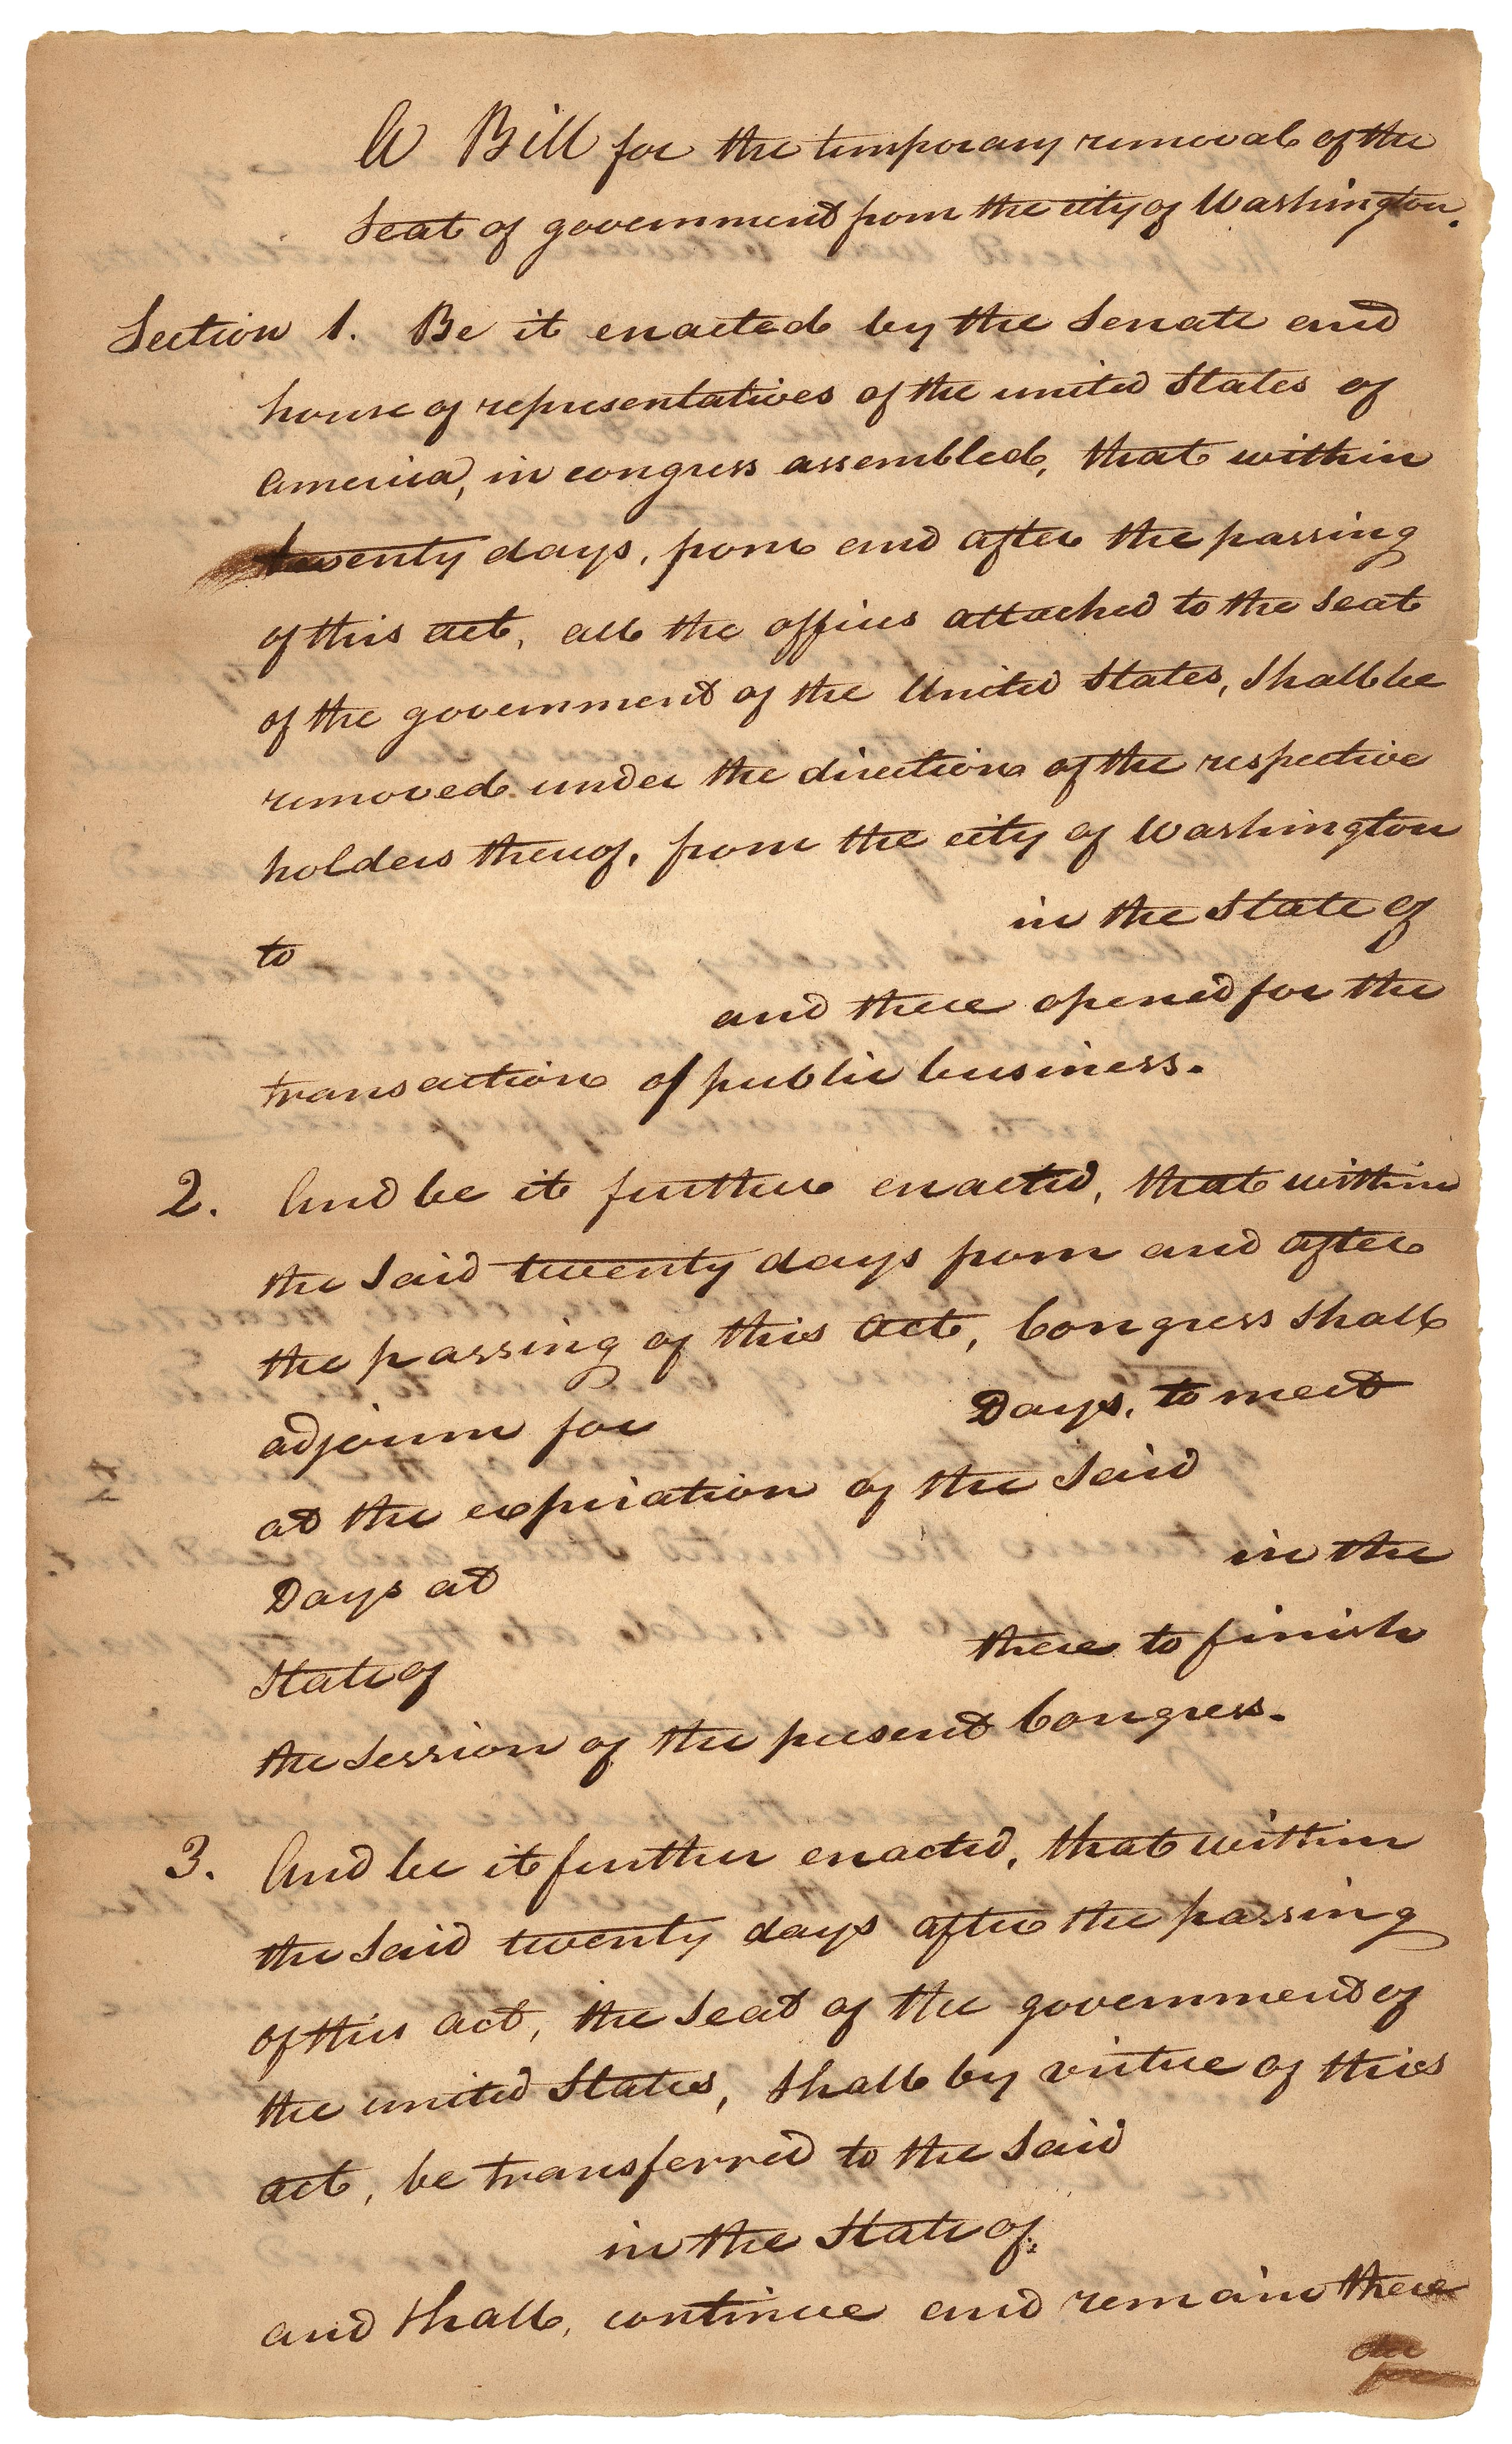 Bill for Temporary Removal, October 3, 1814. (Records of the U.S. House of Representatives, National Archives)